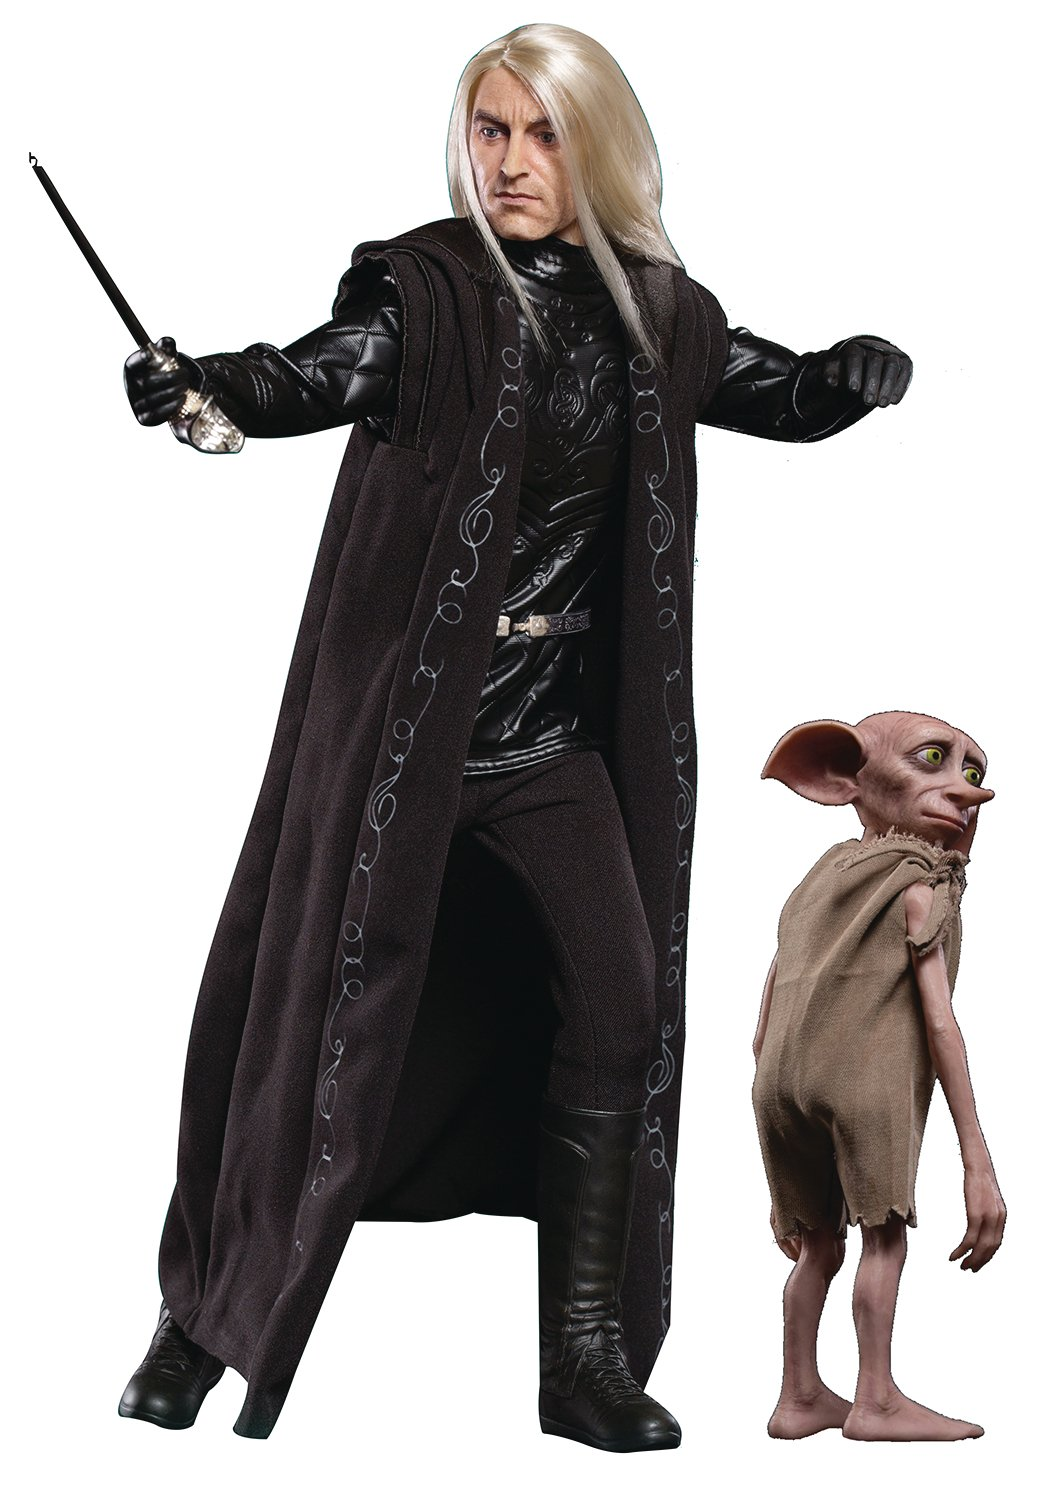 Star Ace Toys Harry Potter MFM Action Figure 2-Pack 1/6 Lucius Malfoy & Dobby 15-30 cm: Amazon.es: Deportes y aire libre